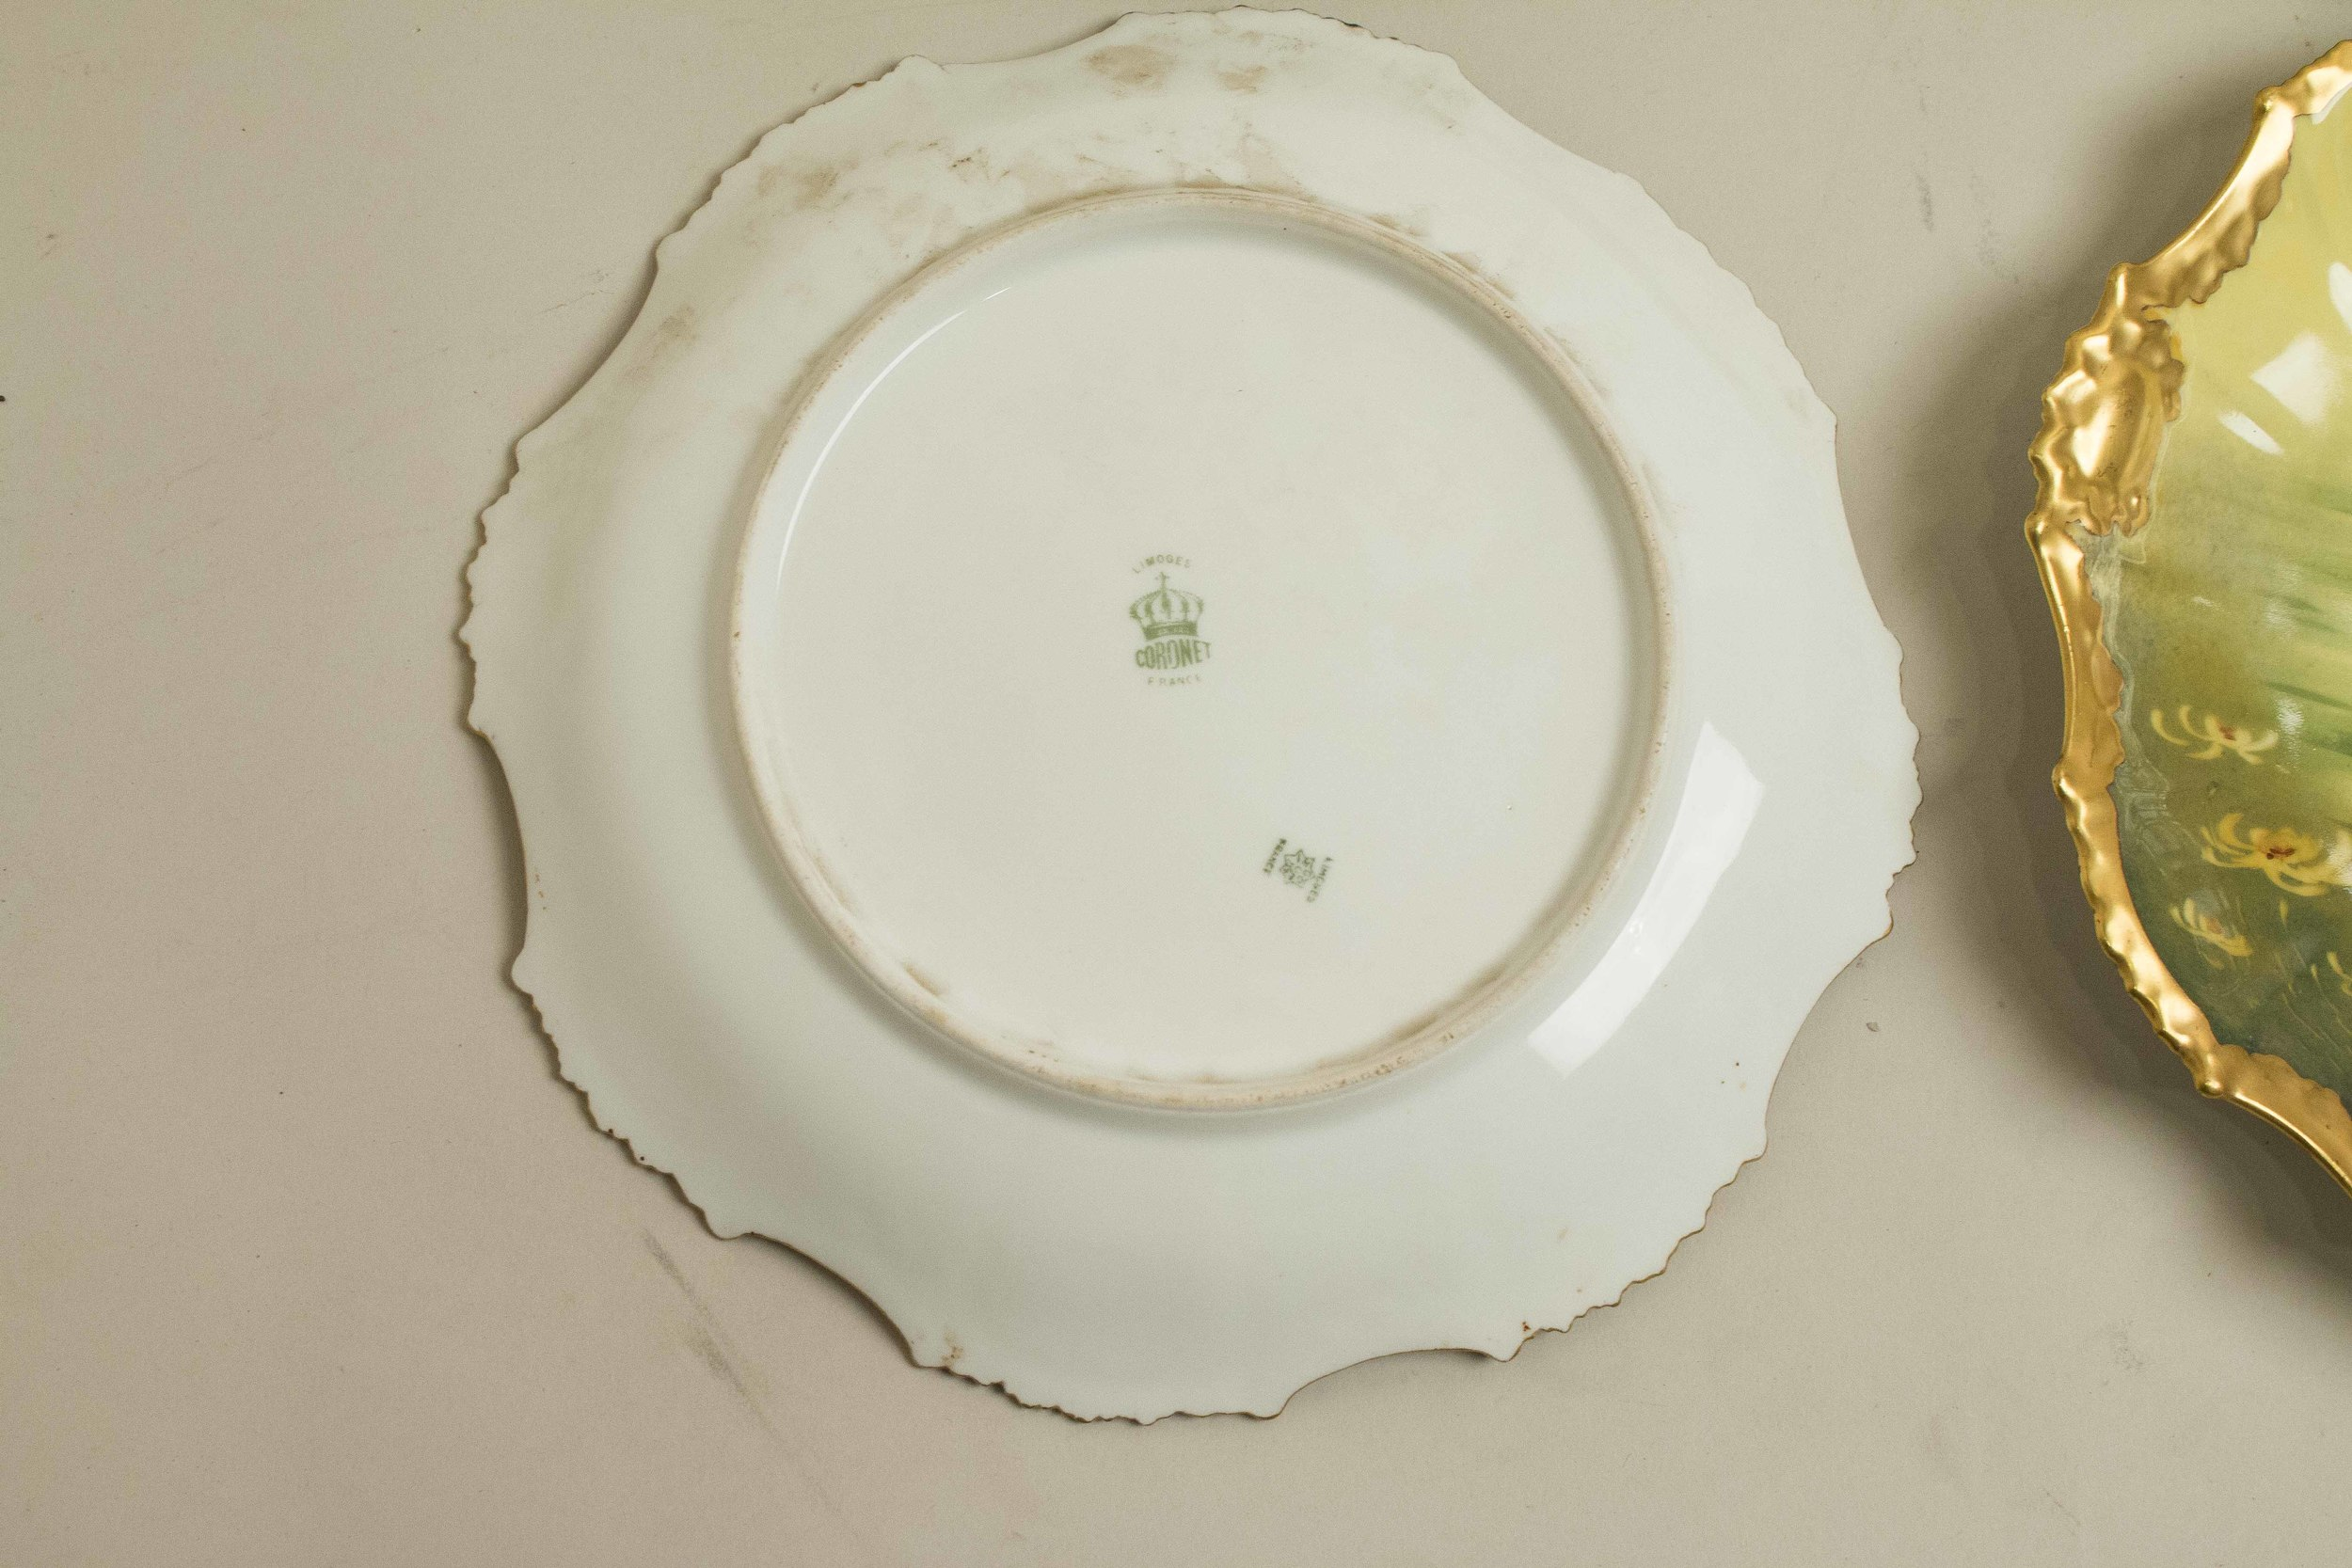 Six Limoges Coronet Porcelain Fish Plates | Witherell\'s Auction House